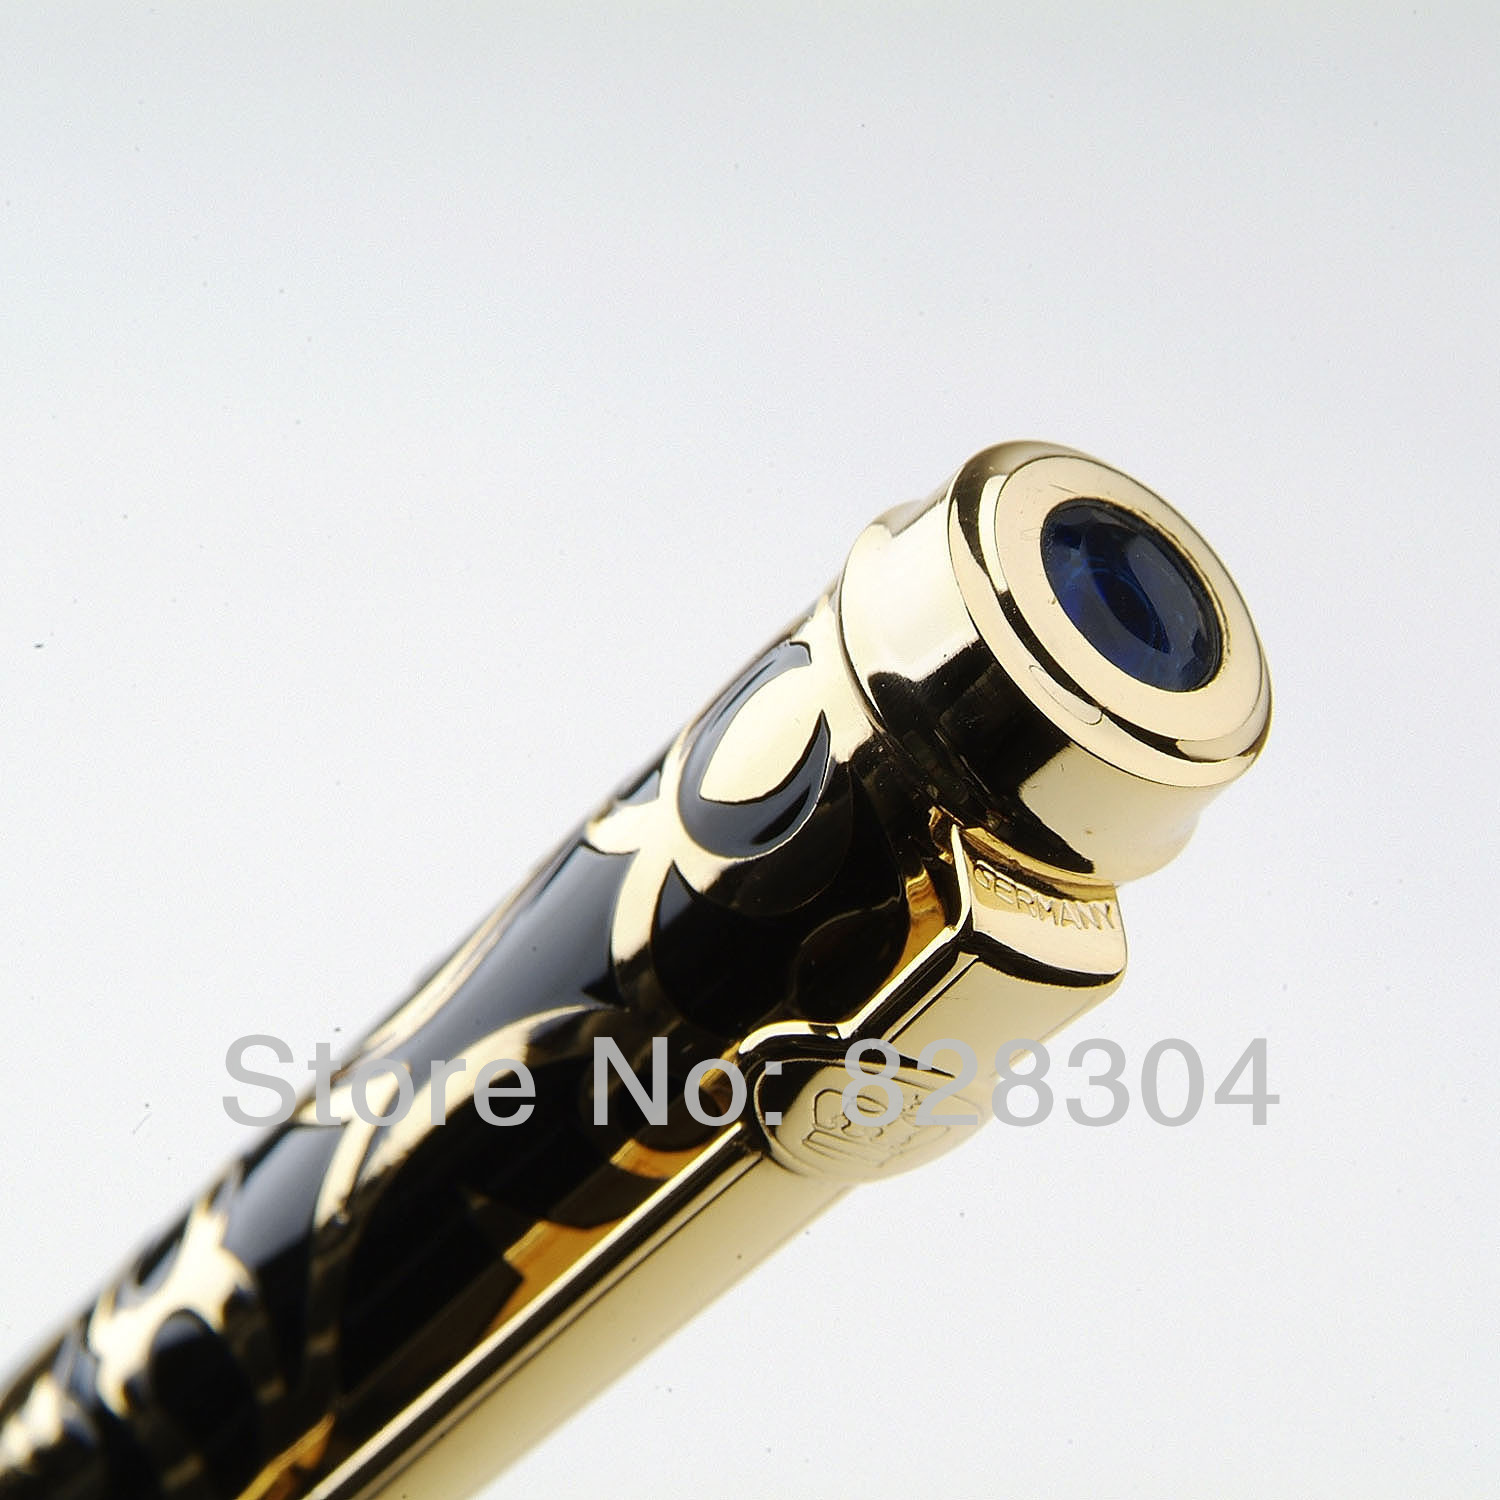 Free shipping Duke beautiful Sapphire fountain Pen [sa]bamboo fiber optic lines in frs2053 2pcs lot